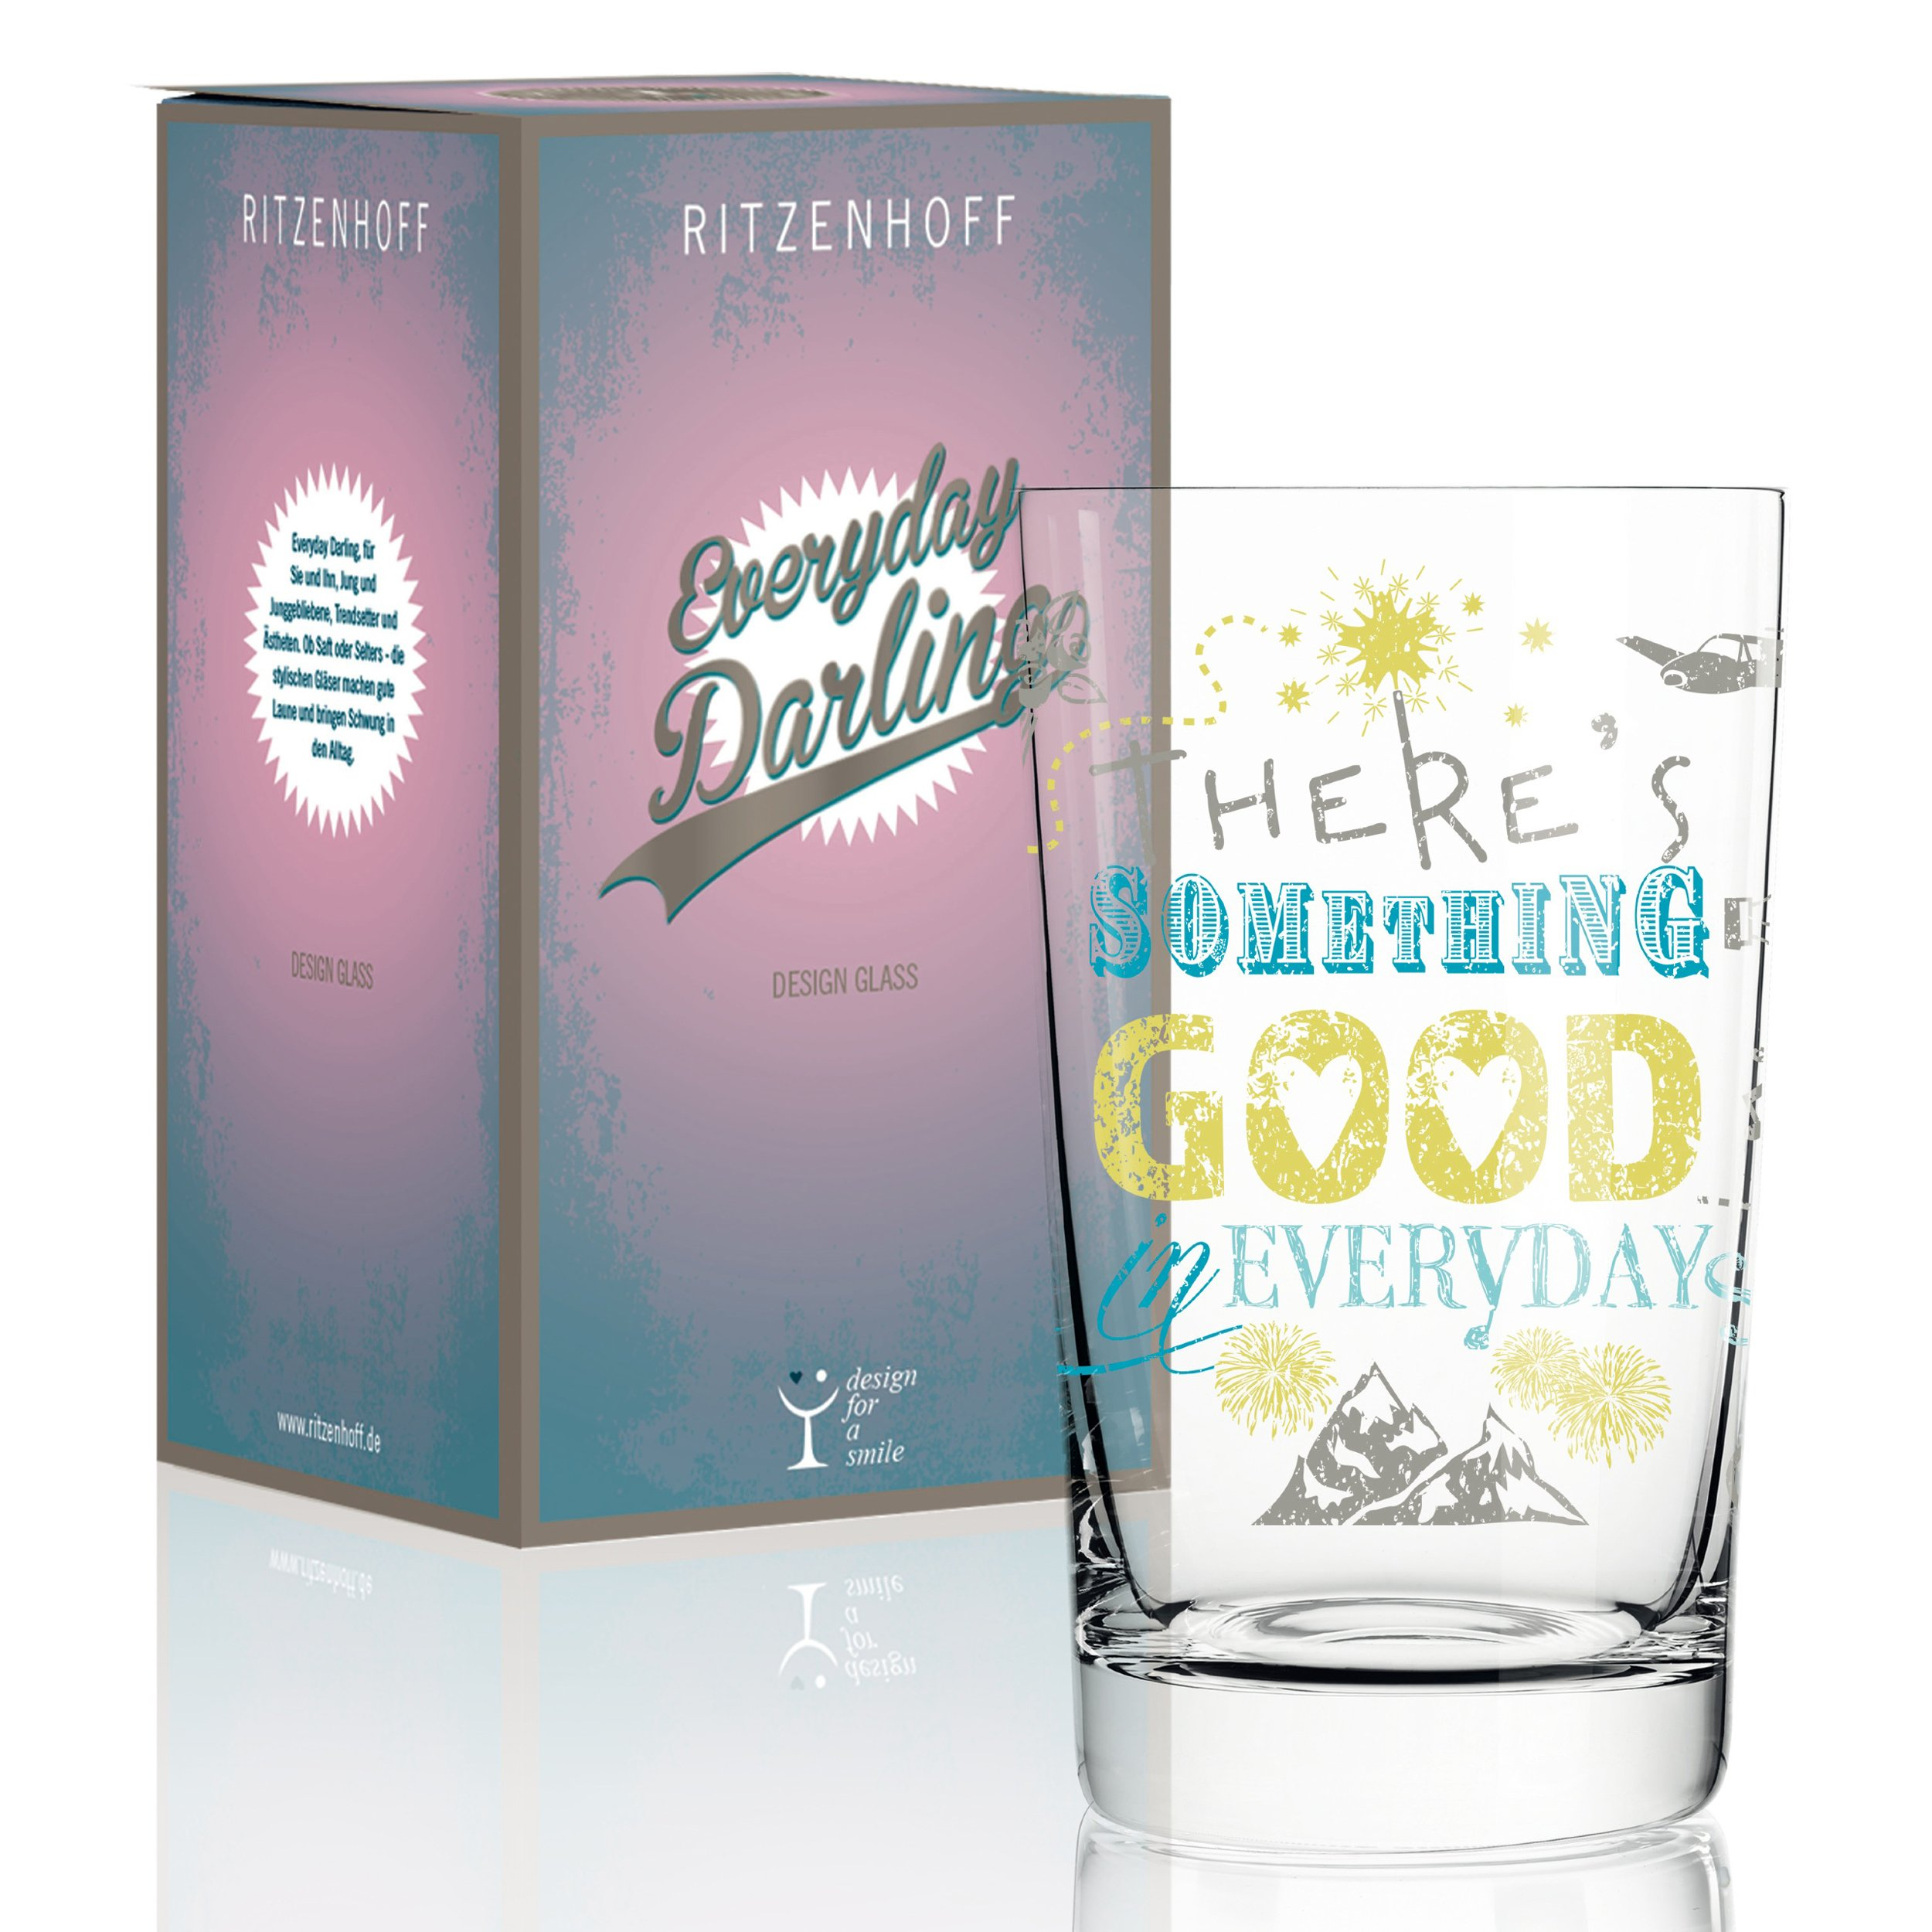 RITZENHOFF Everyday Darling Soft Drink Glass by Petra Mohr (Something Good), made of crystal glass, 300 ml, with trendy designs